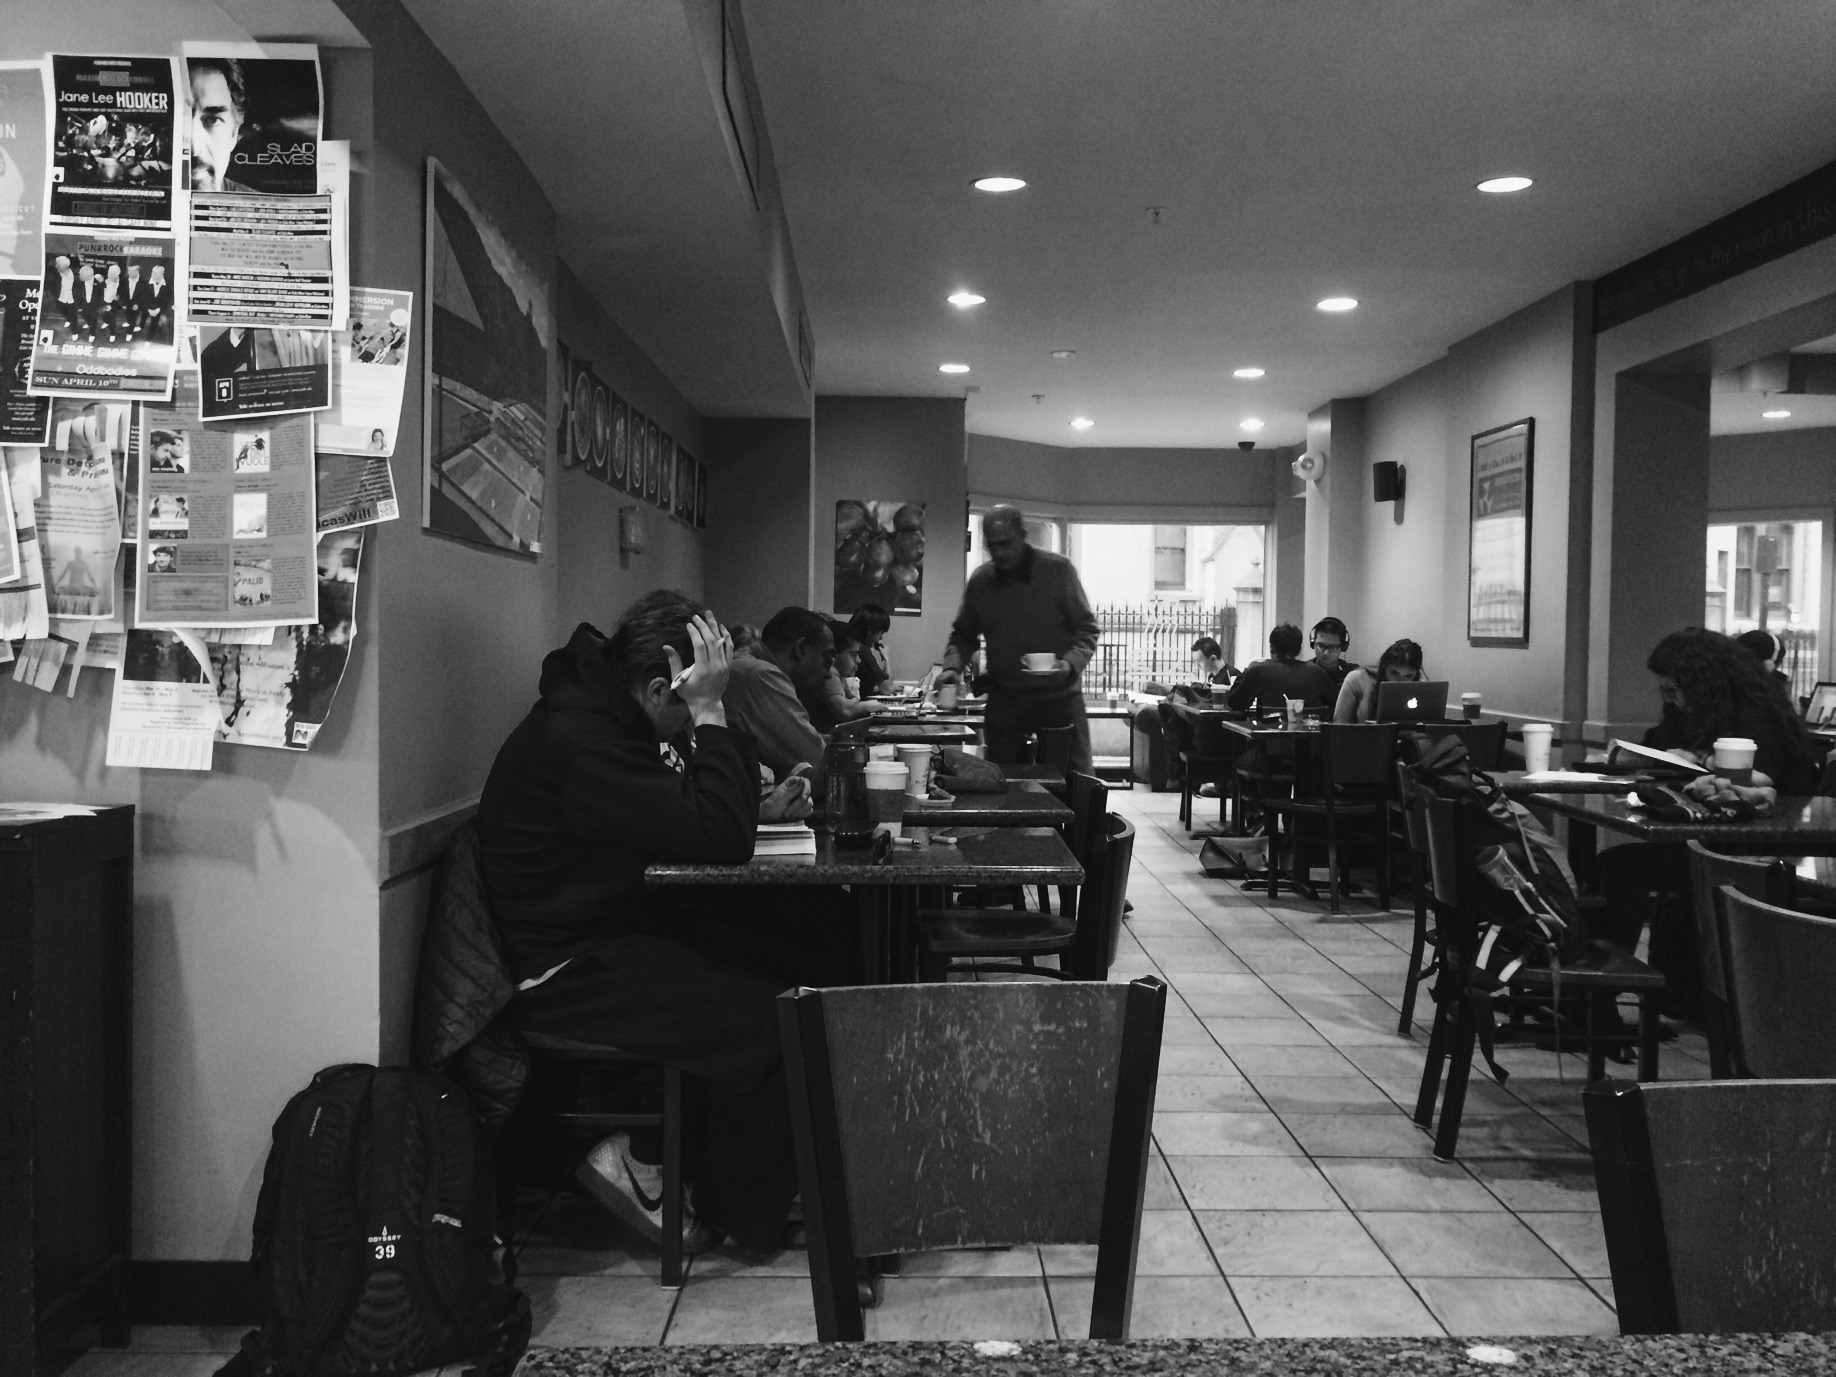 For some reason I had a lot of fun watching these Yale students studying at the coffee shop.